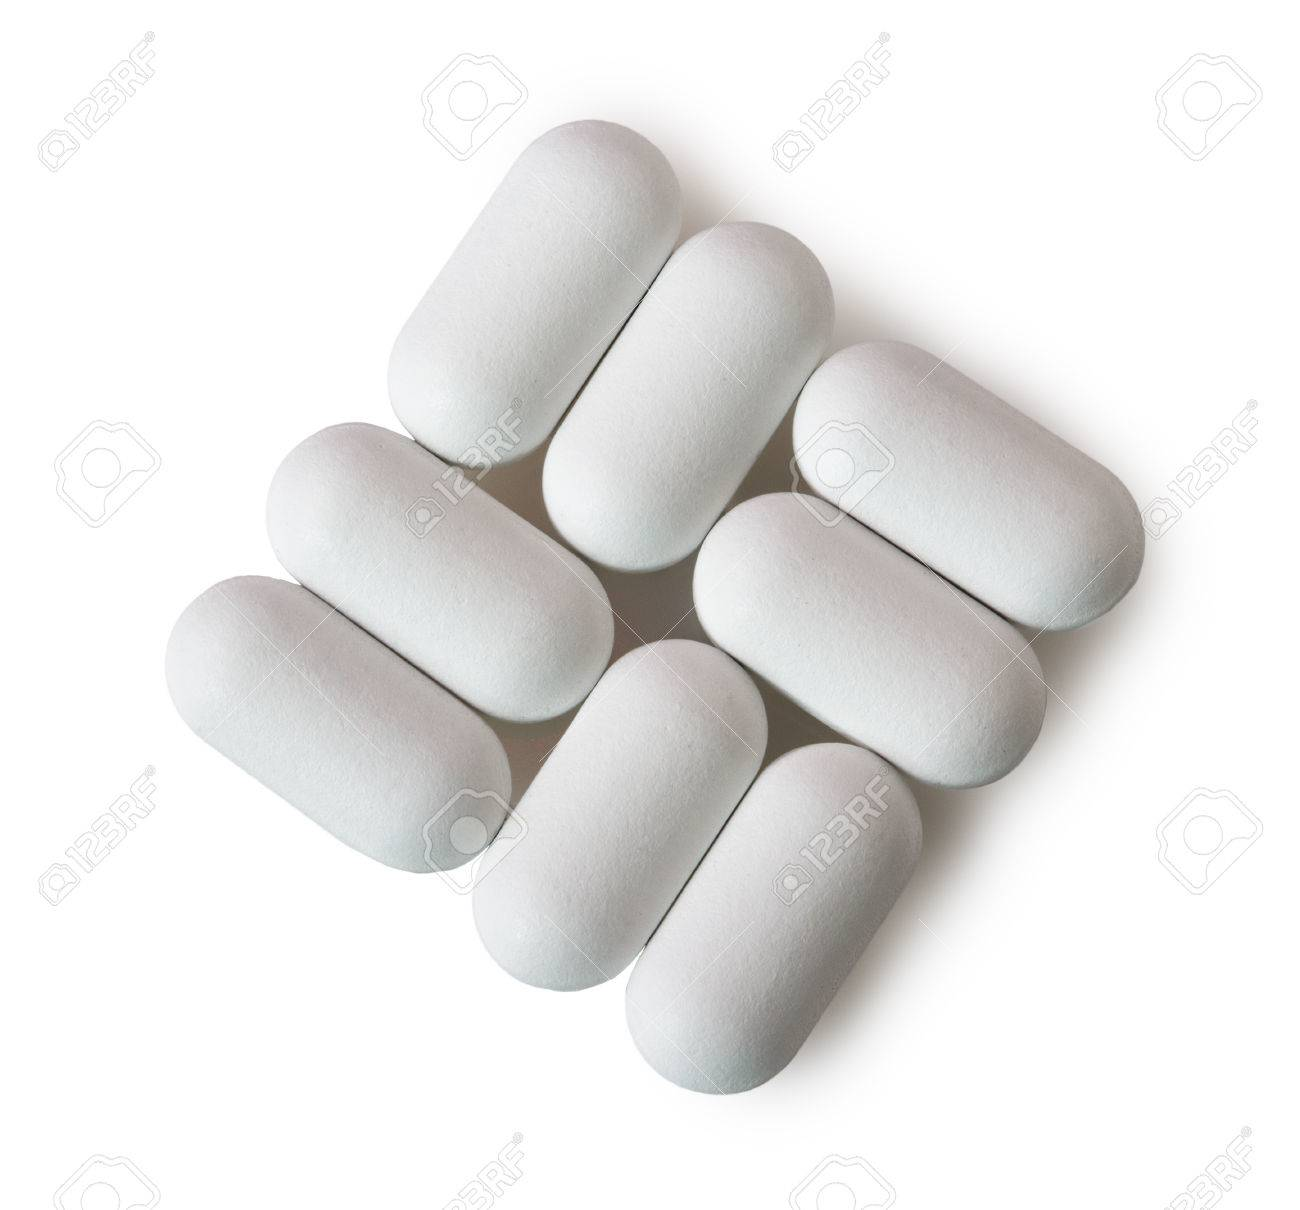 White Oval Pills Isolated On White Background Stock Photo Picture